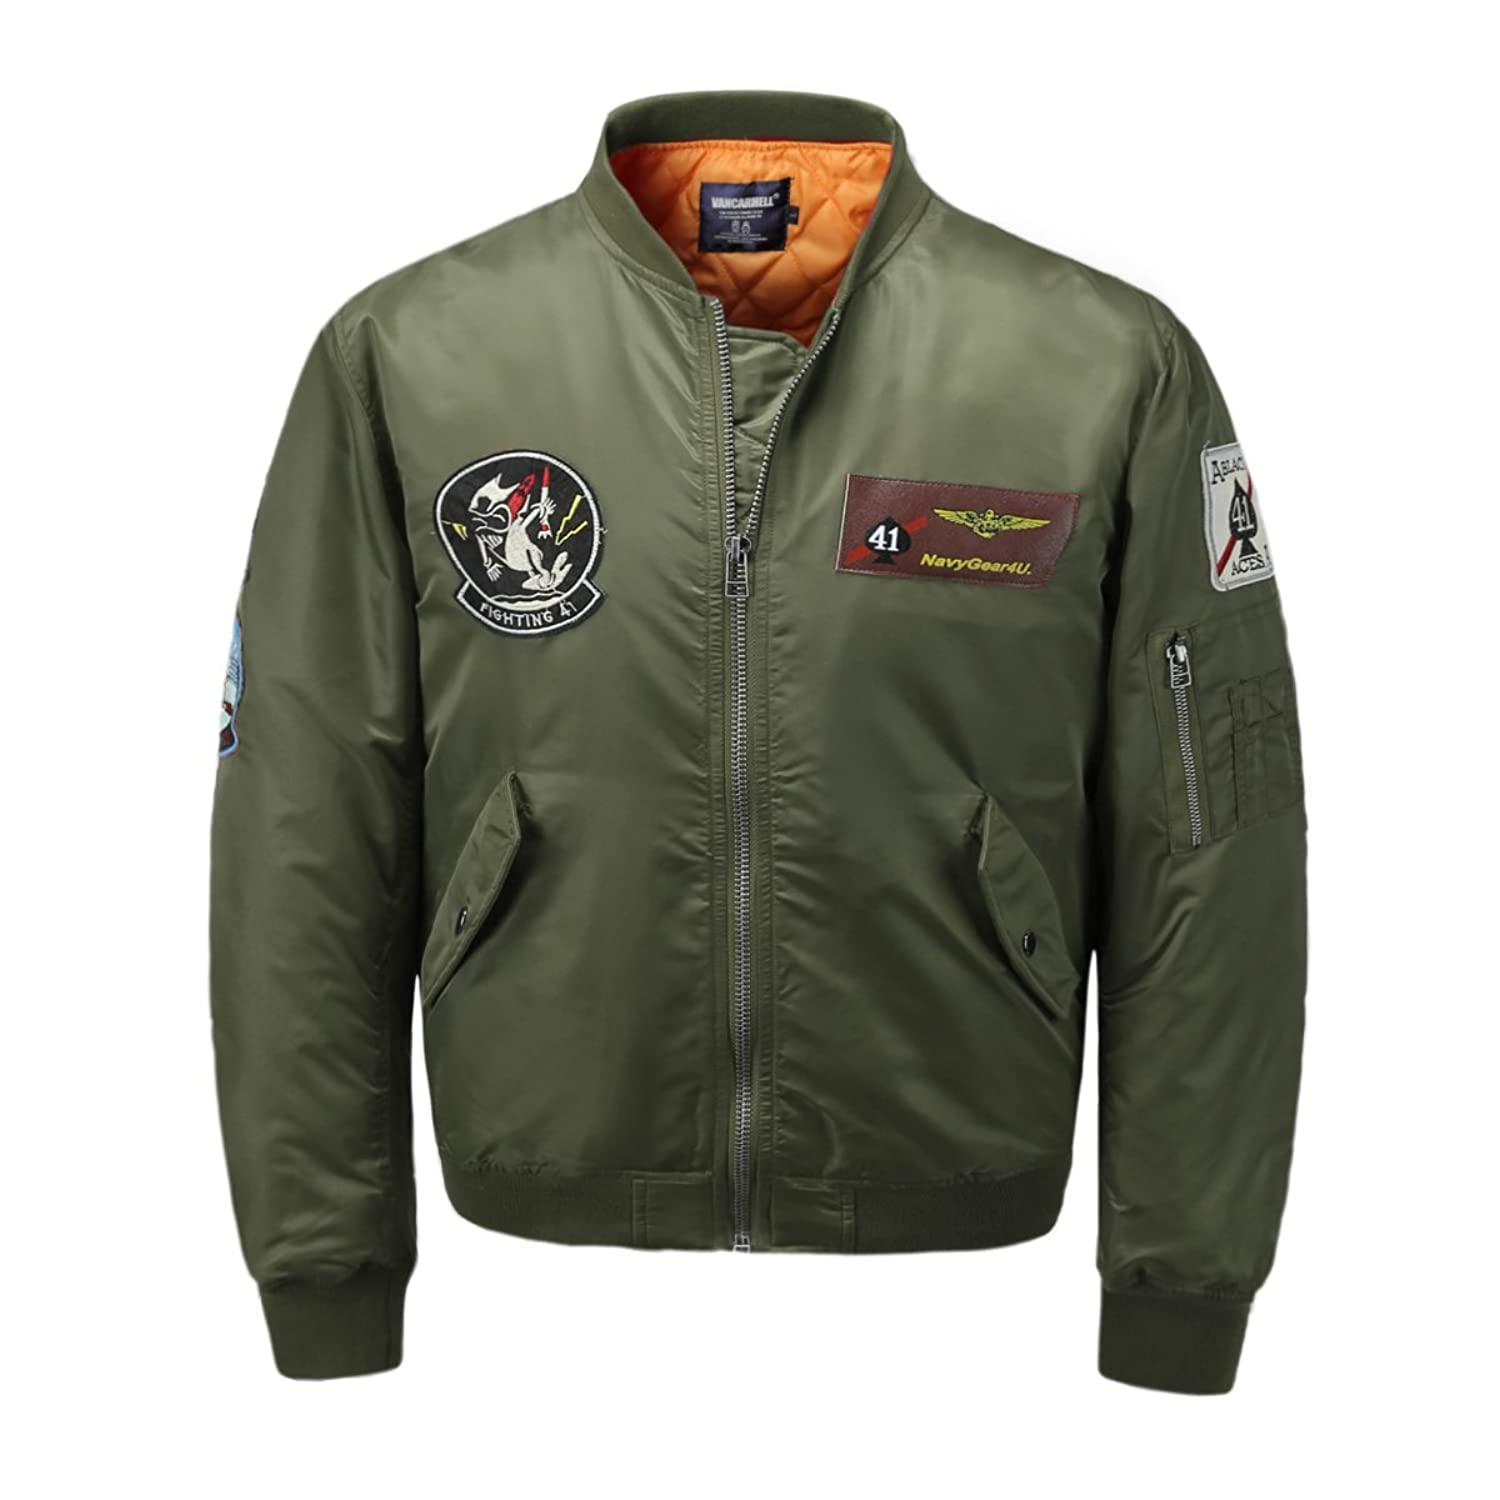 712c23bde3c Top1  AVIDACE Classic Bomber Jacket Men Nylon Quilted with Patches